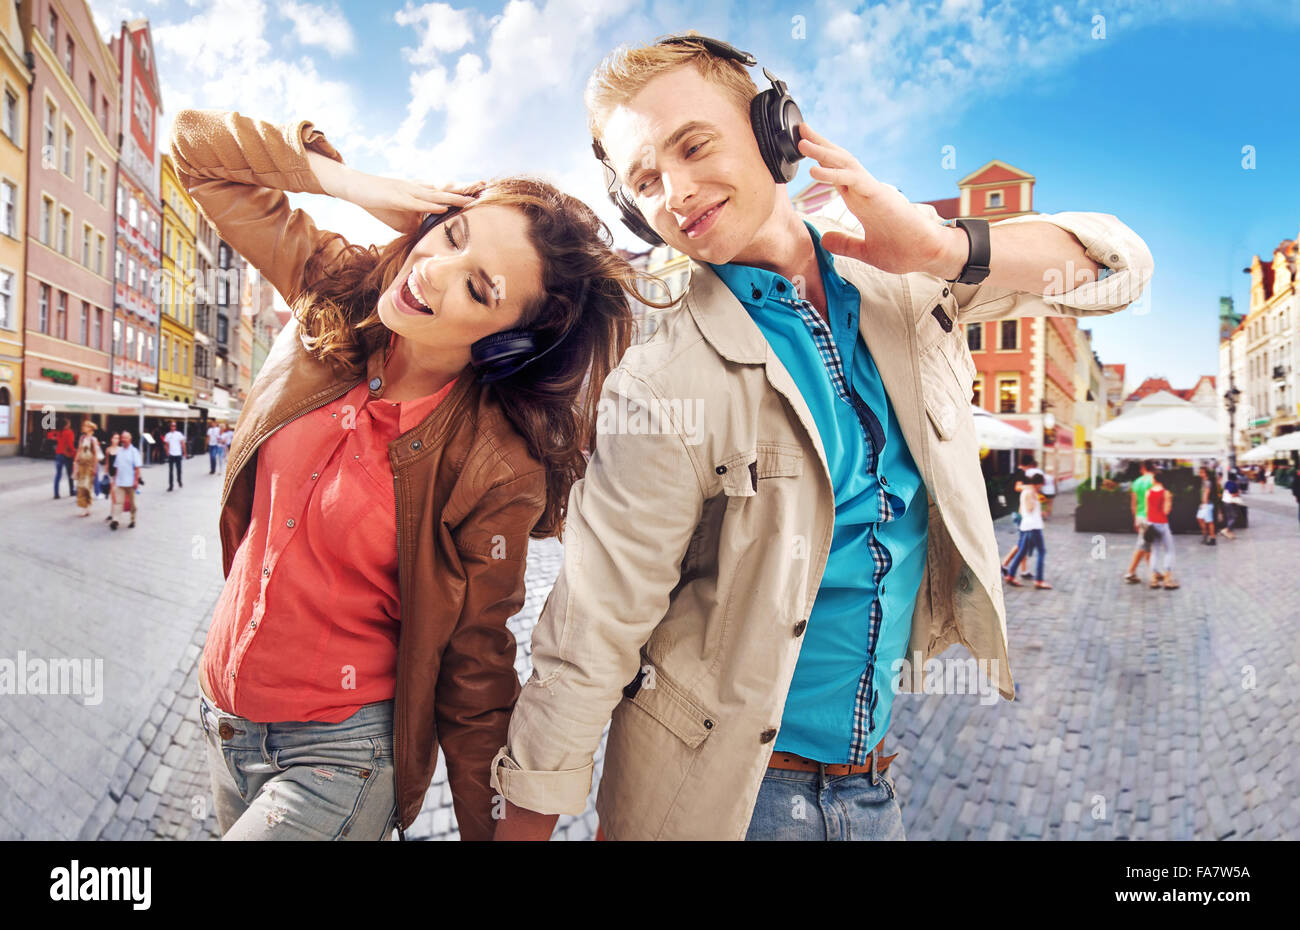 Cheerful couple dancing in the downtown - Stock Image